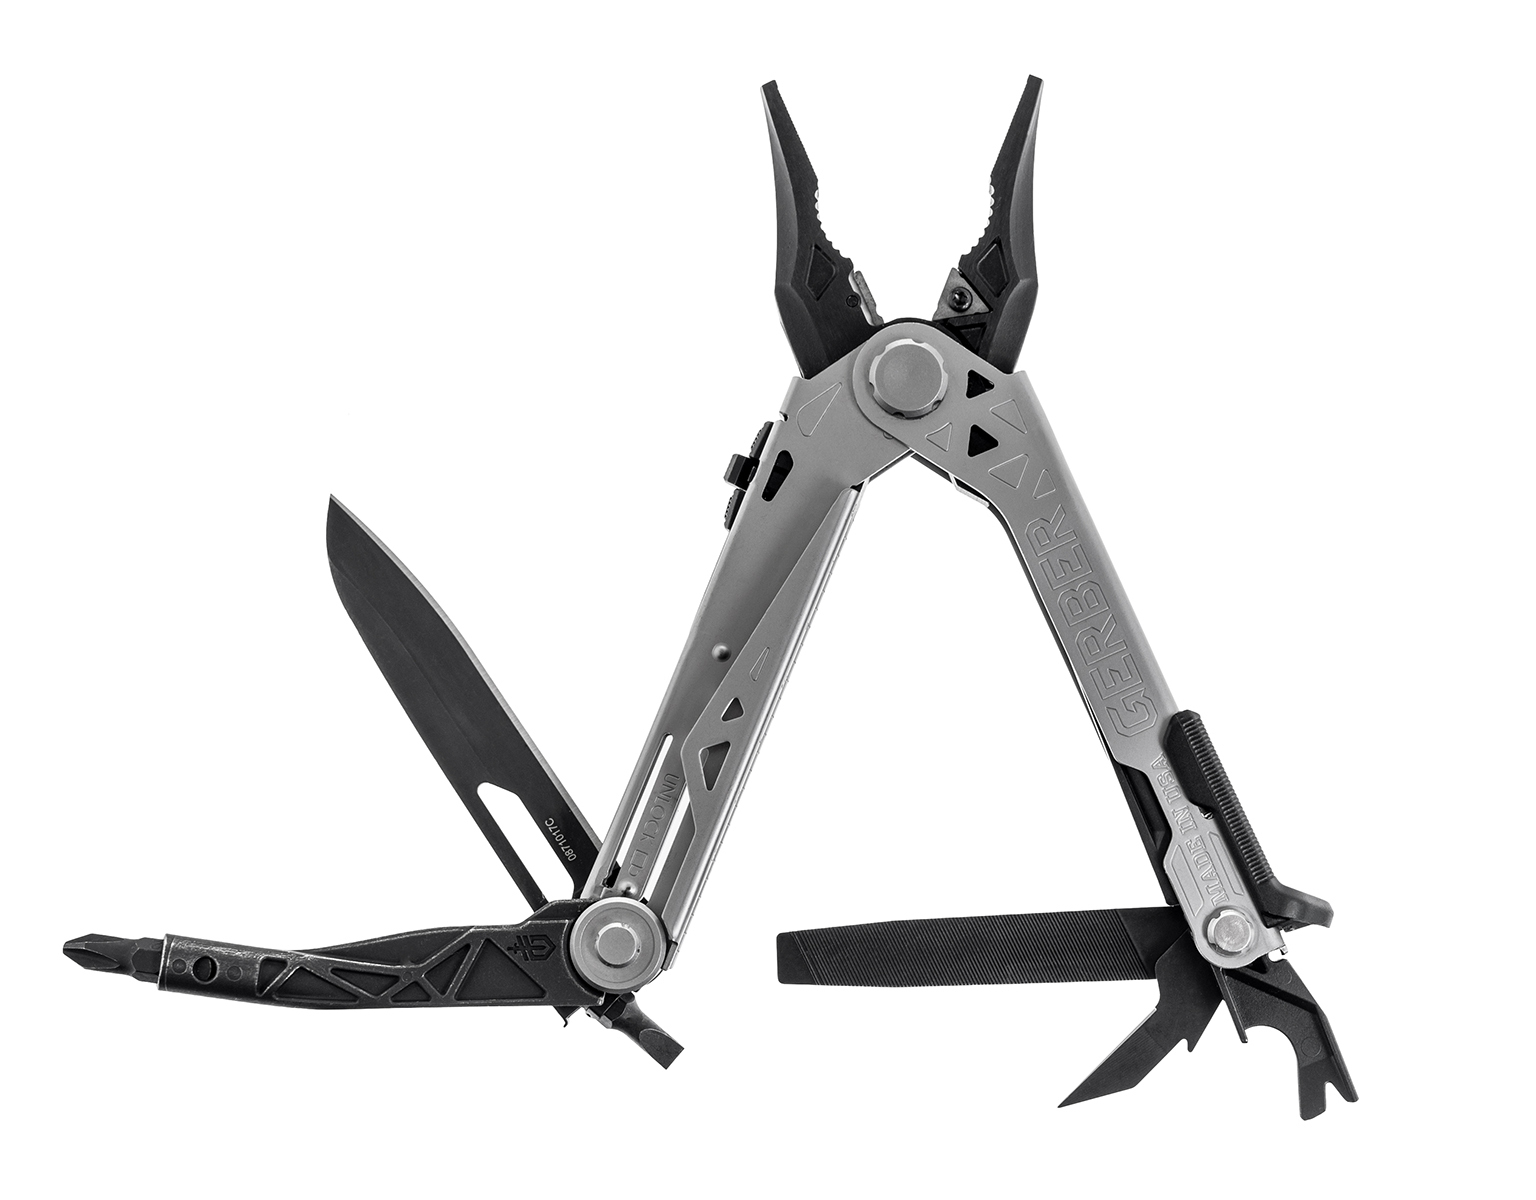 Мультитул Gerber Center-Drive - 3 мультитул gerber center drive multi tool